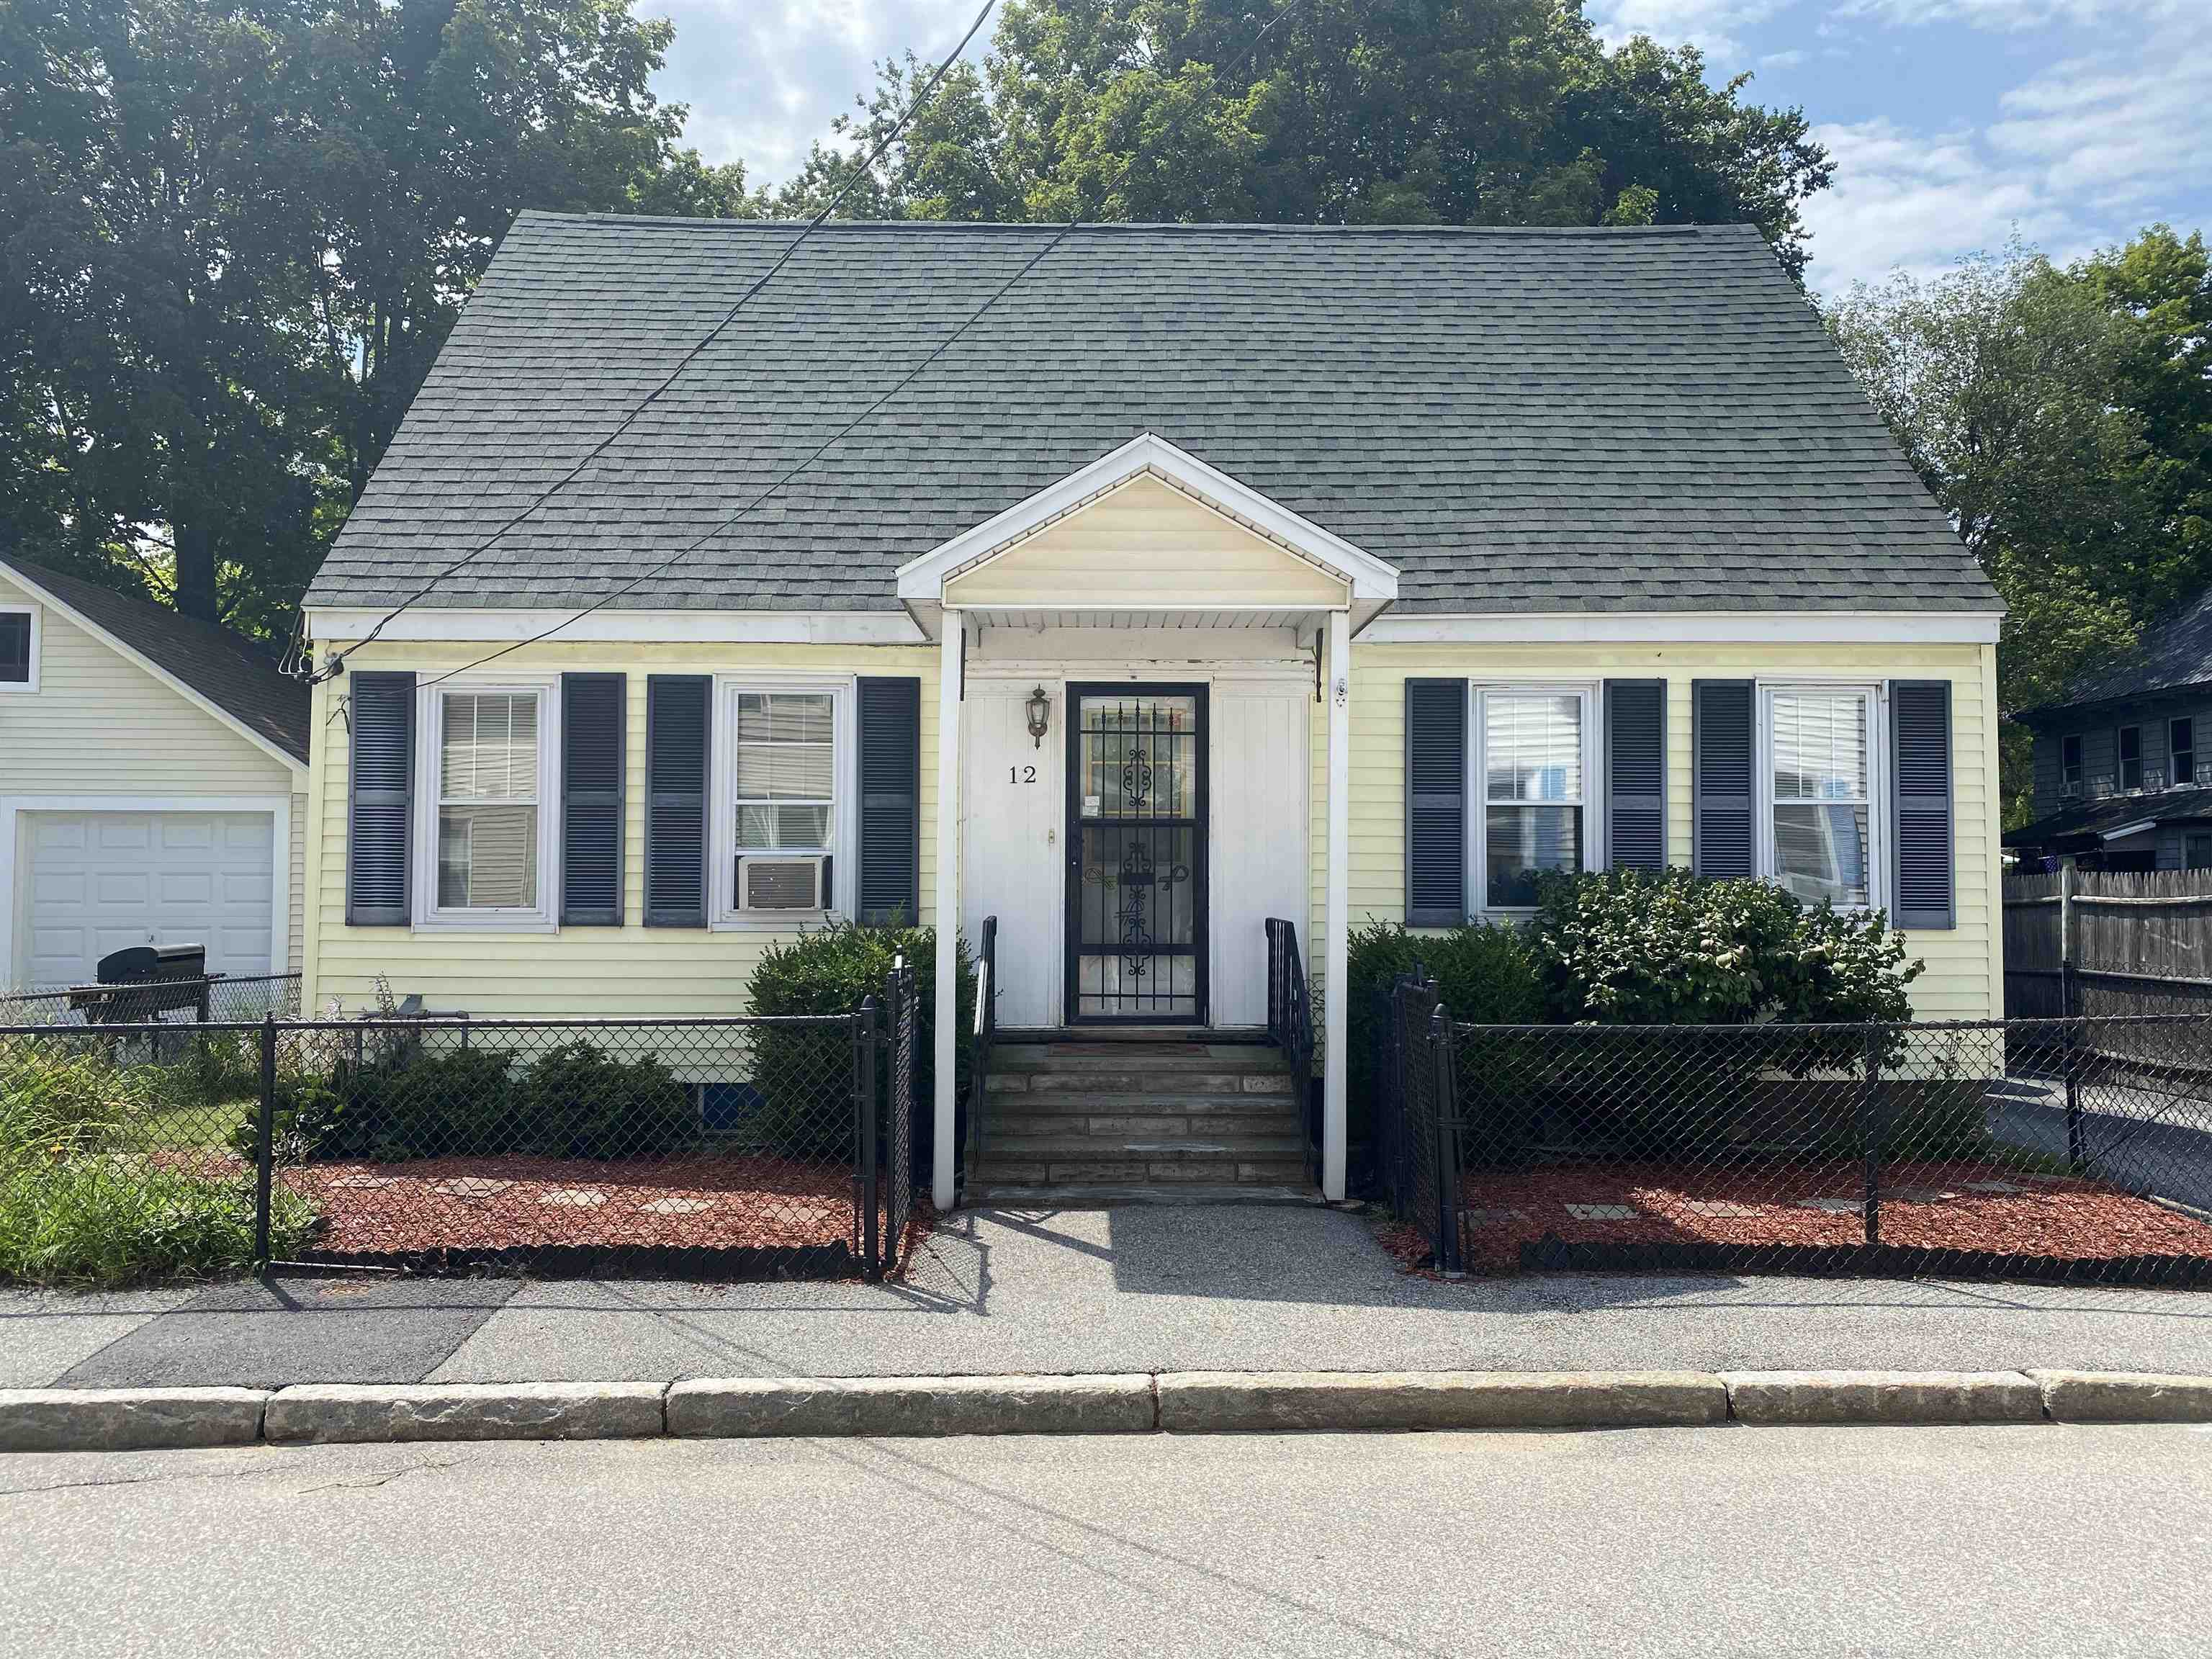 12 Myrtle Street, Concord, NH 03301